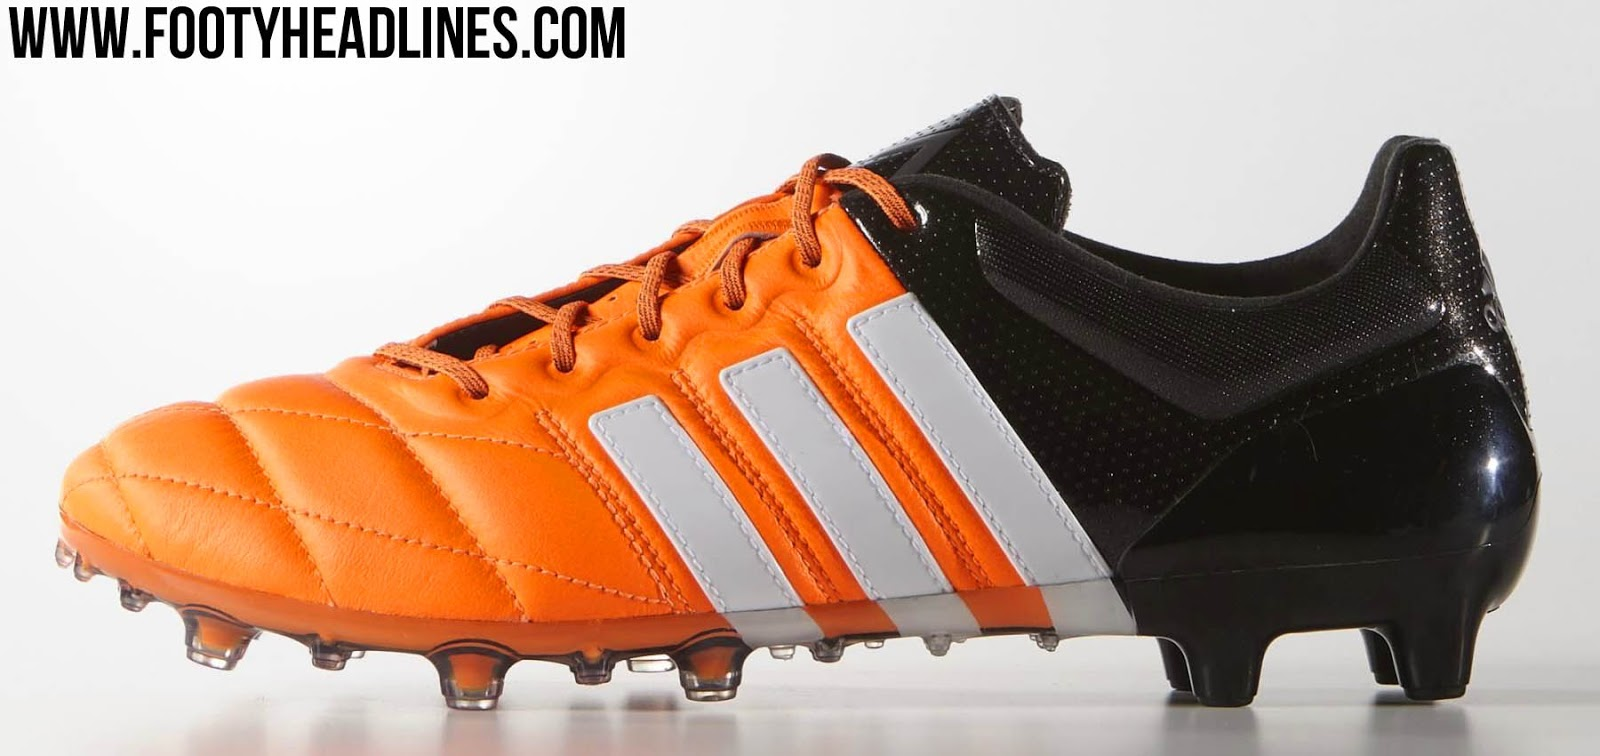 greece adidas ace 15.1 leder orange 014c9 62d14